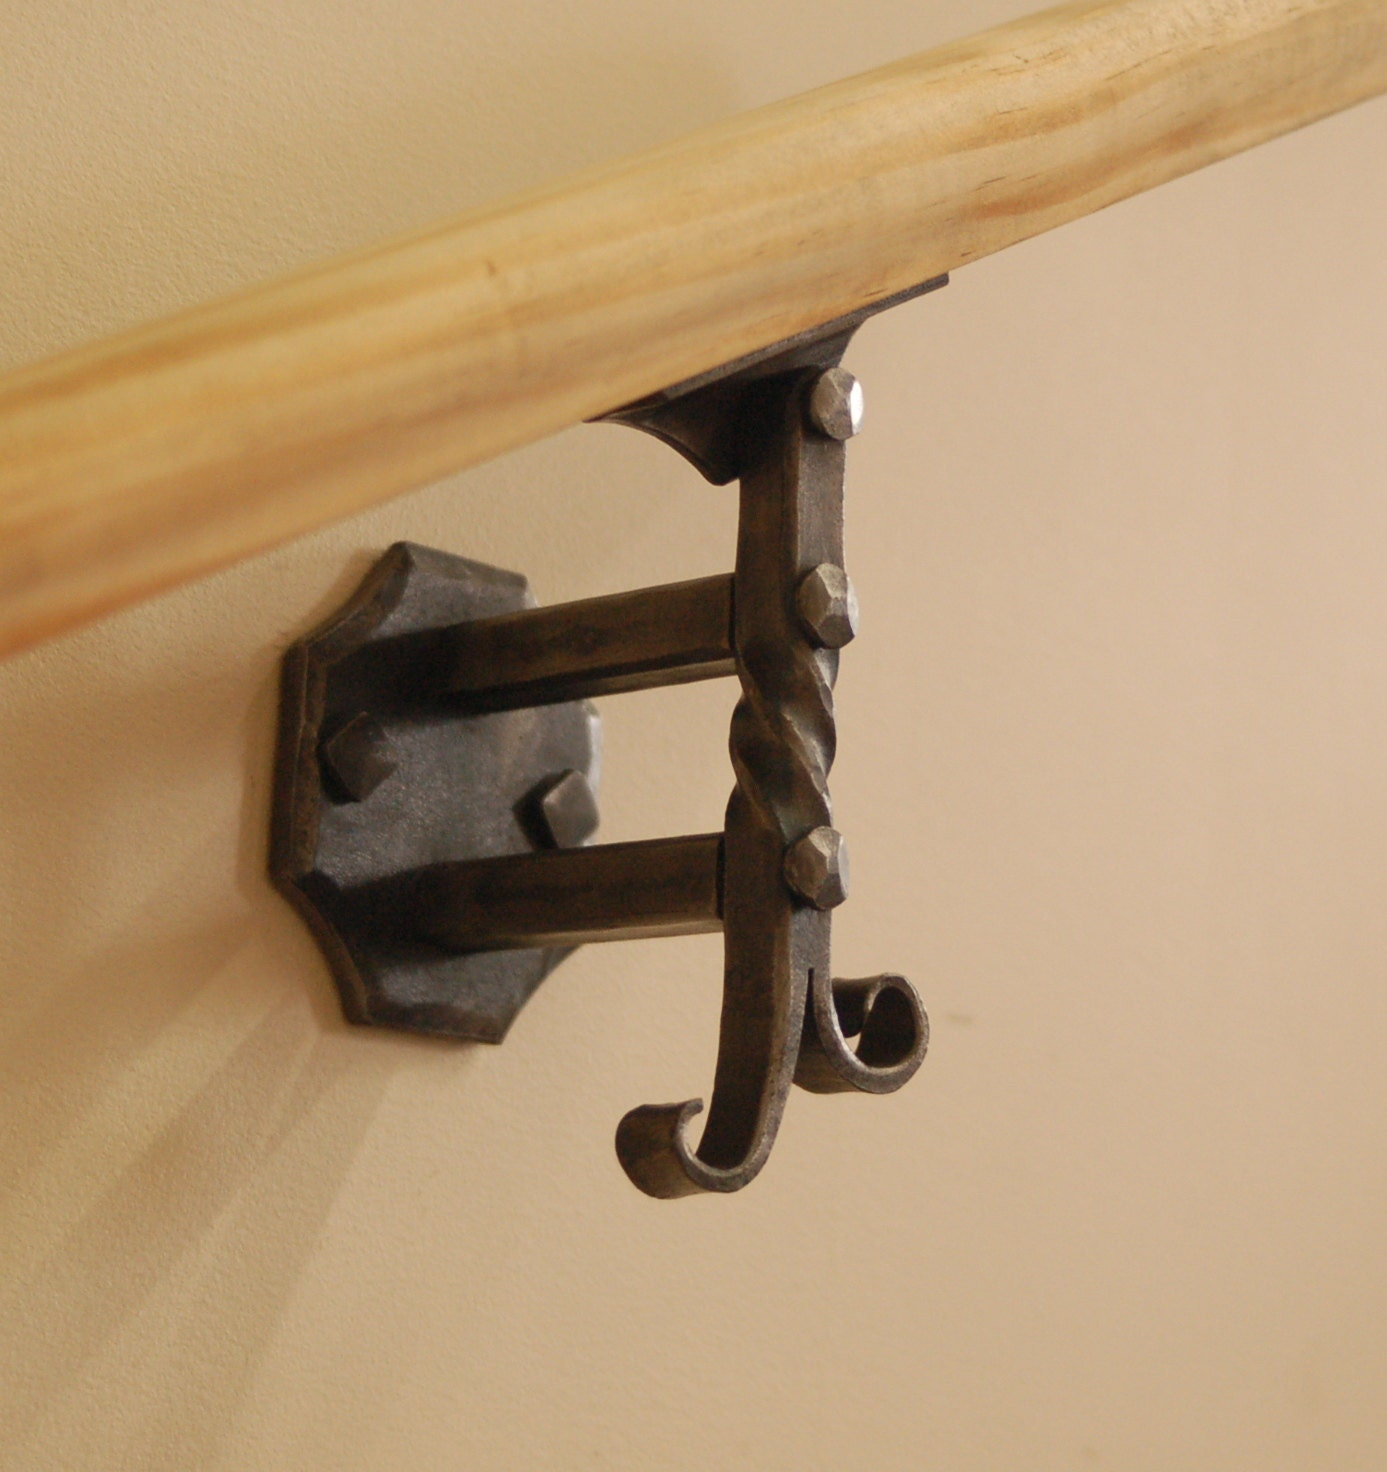 Image Result For Handrail Mountingckets